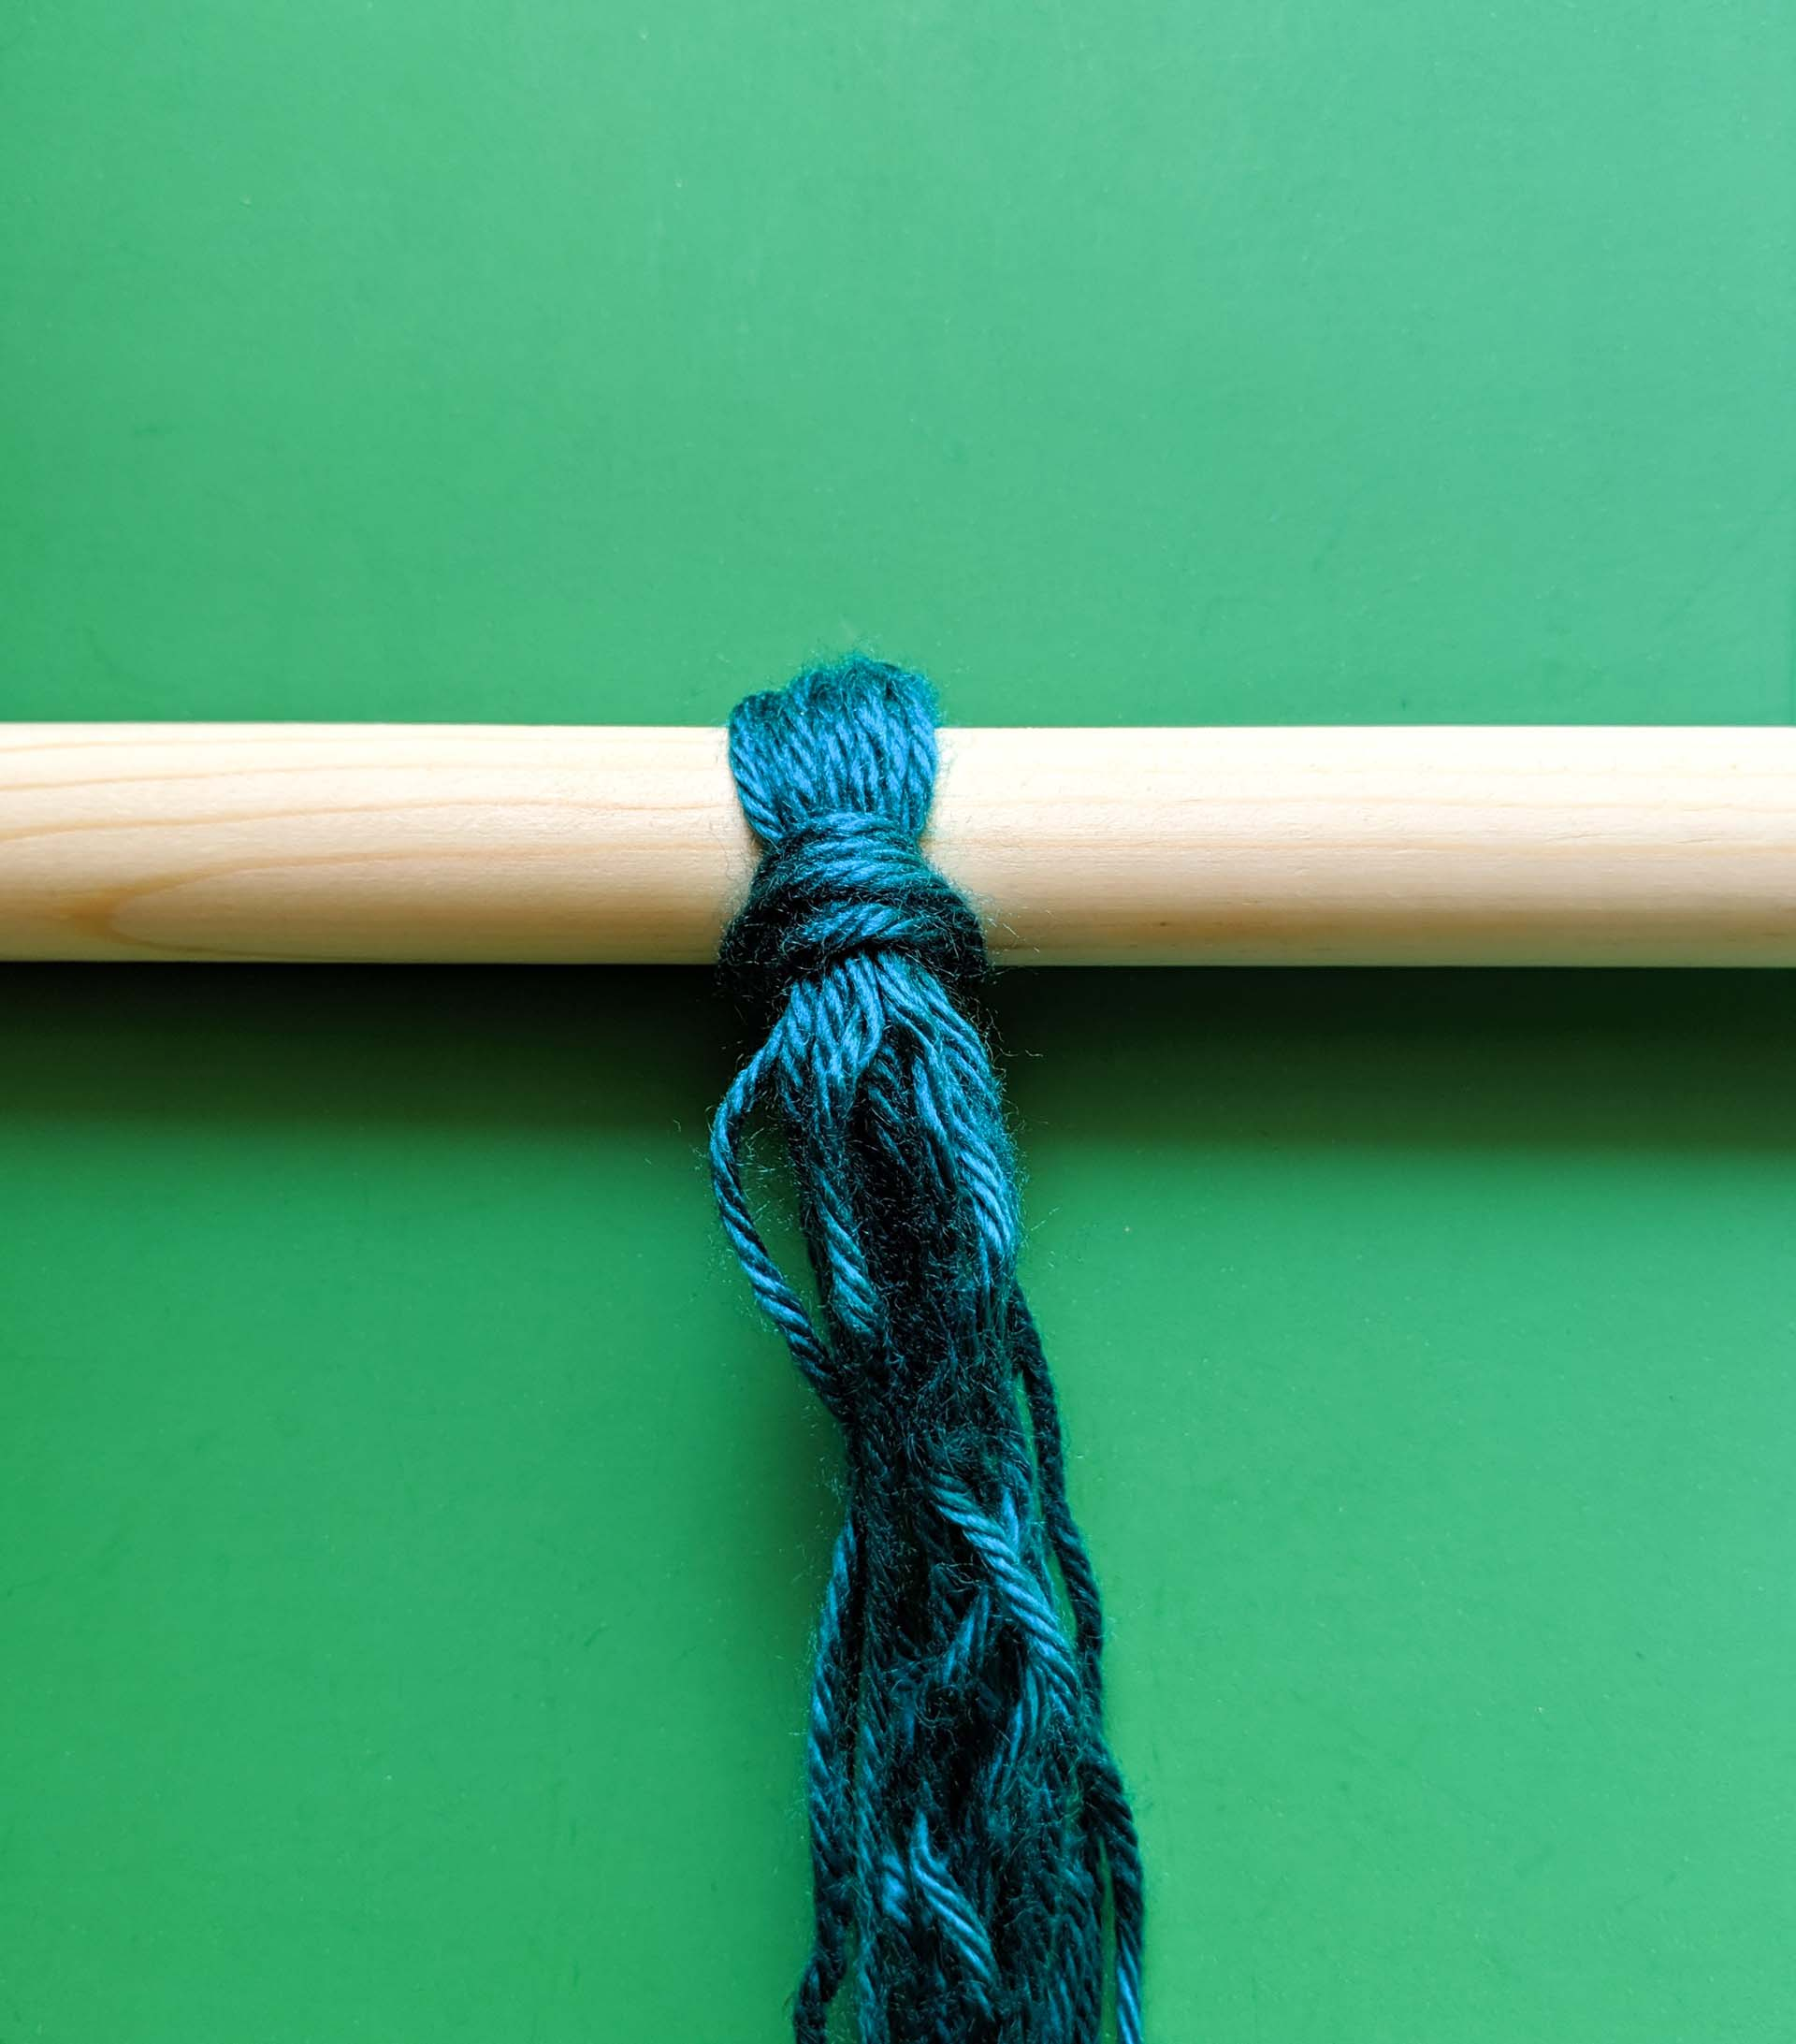 Wrapping the yarn around the dowel